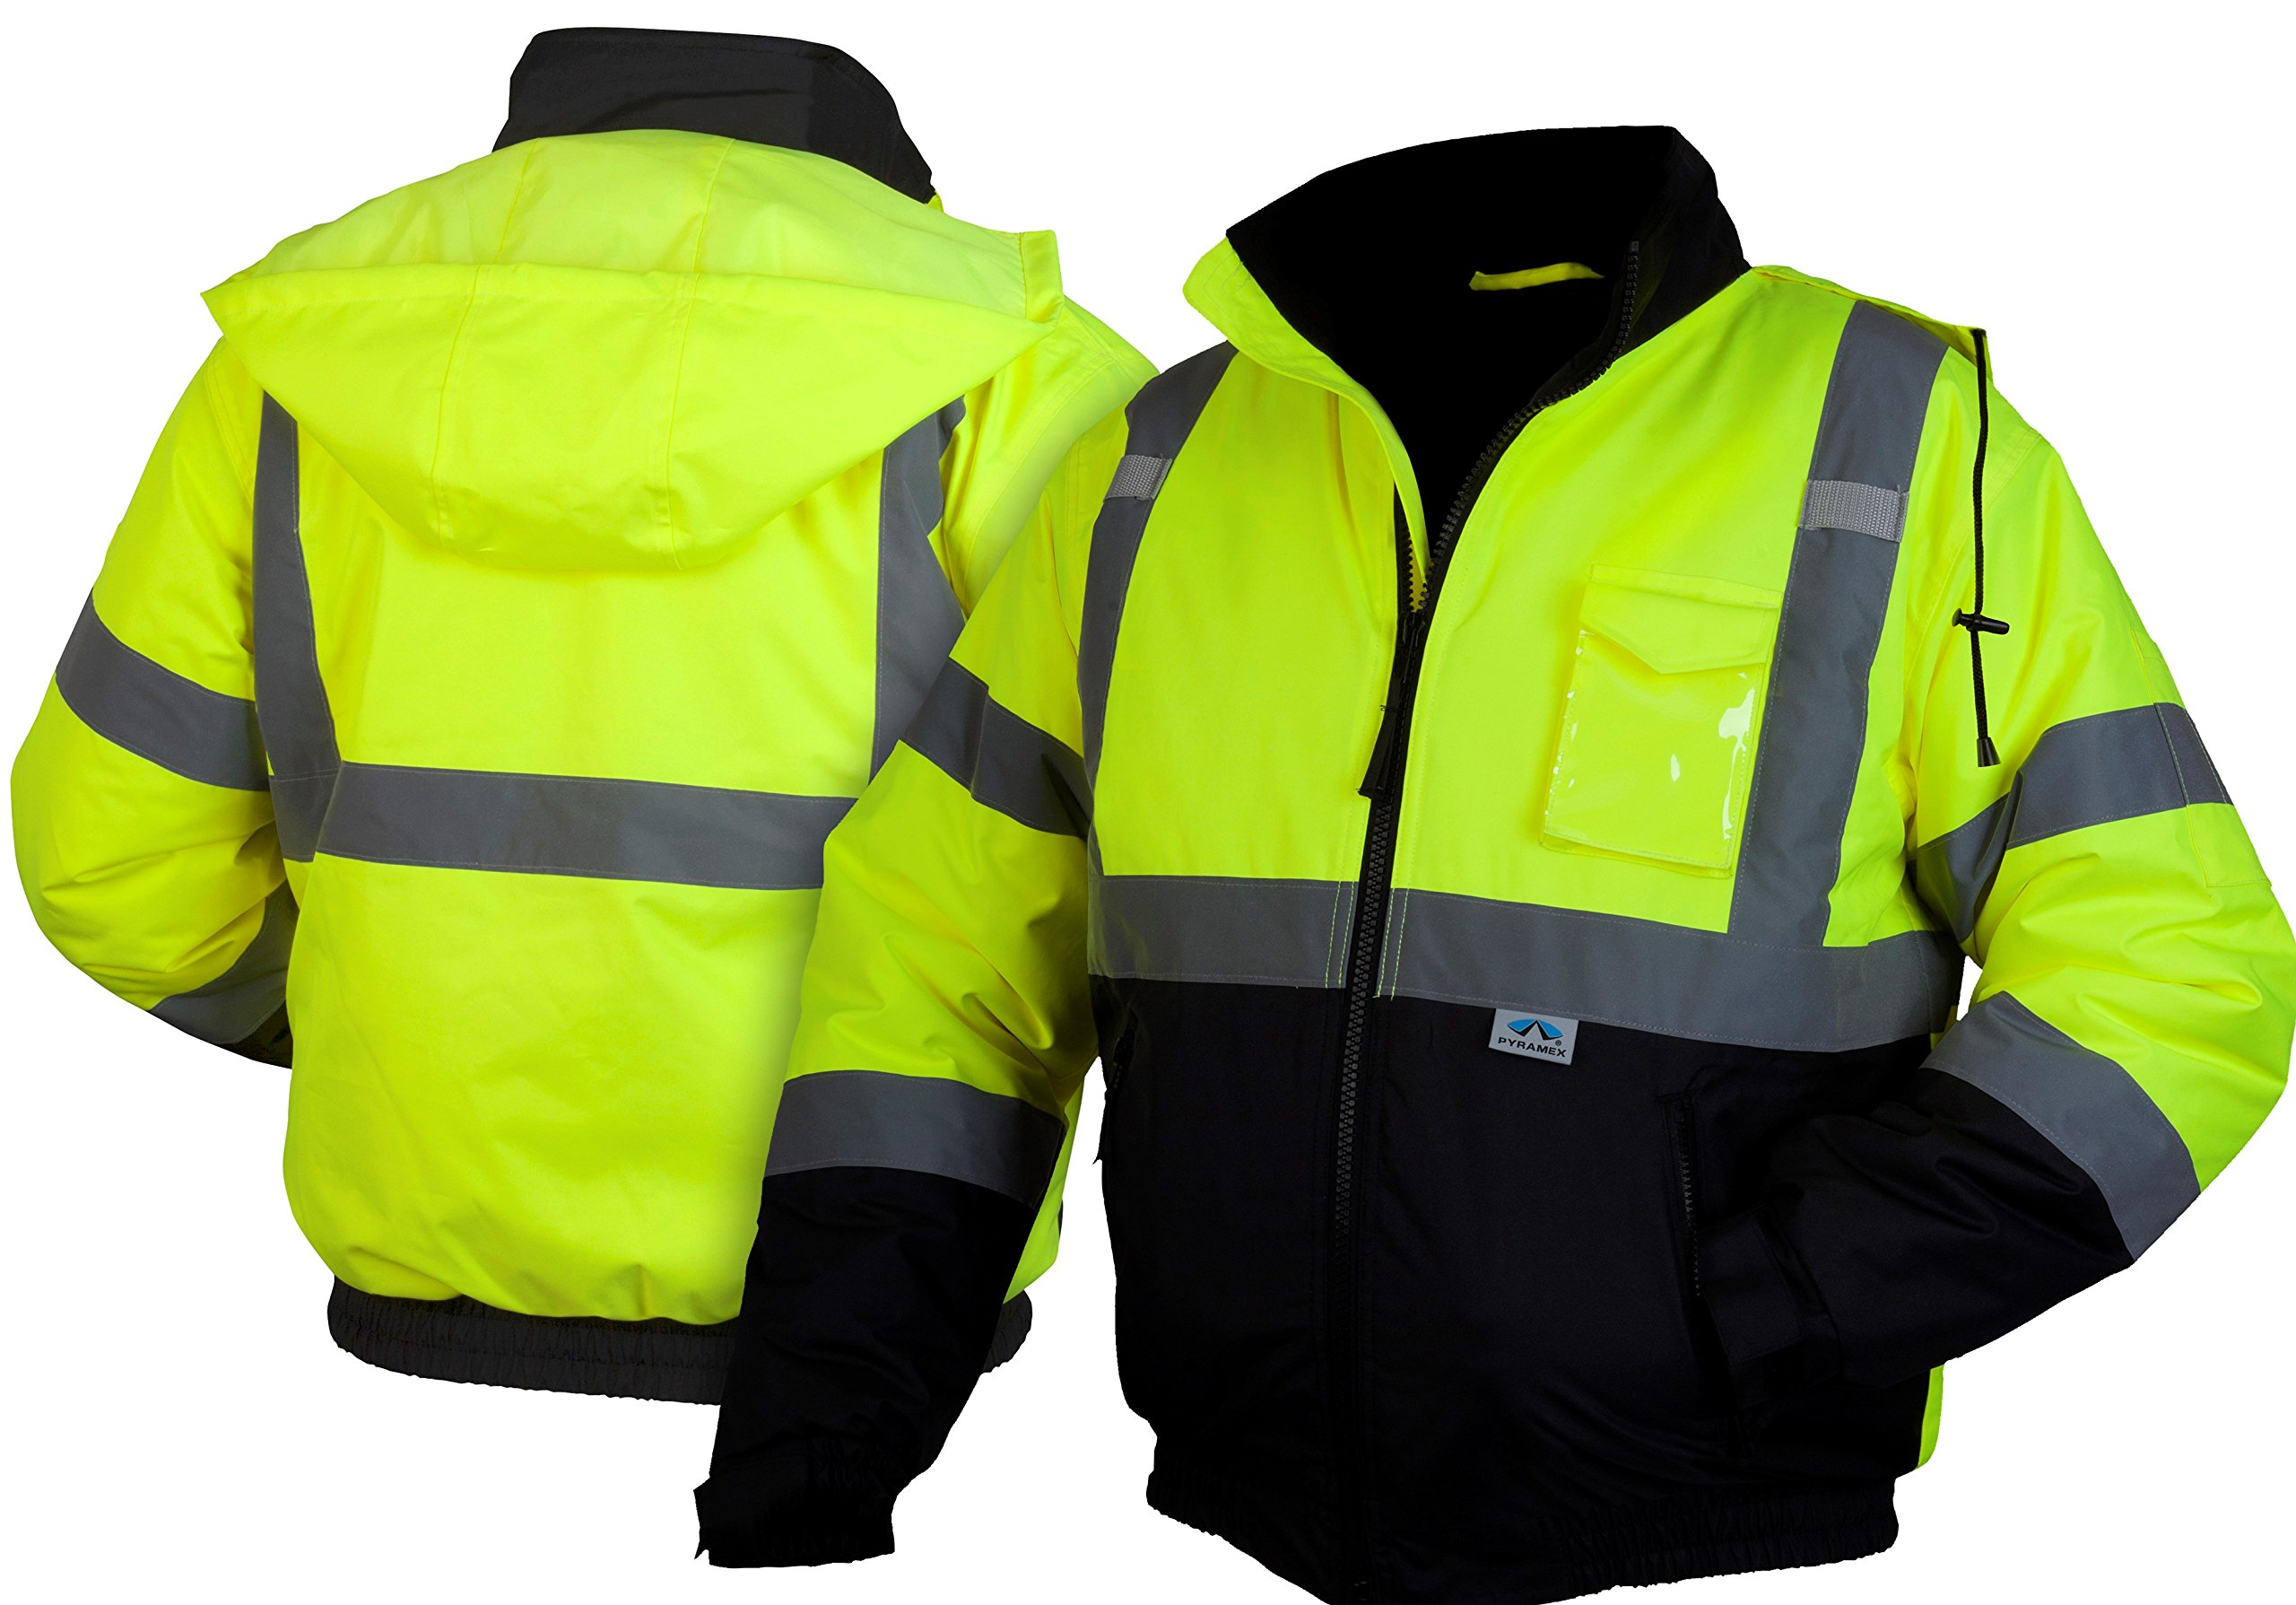 Pyramex Safety Bomber Jacket with Quilted Lining, Hi-Vis Lime, Large by Pyramex (Image #3)